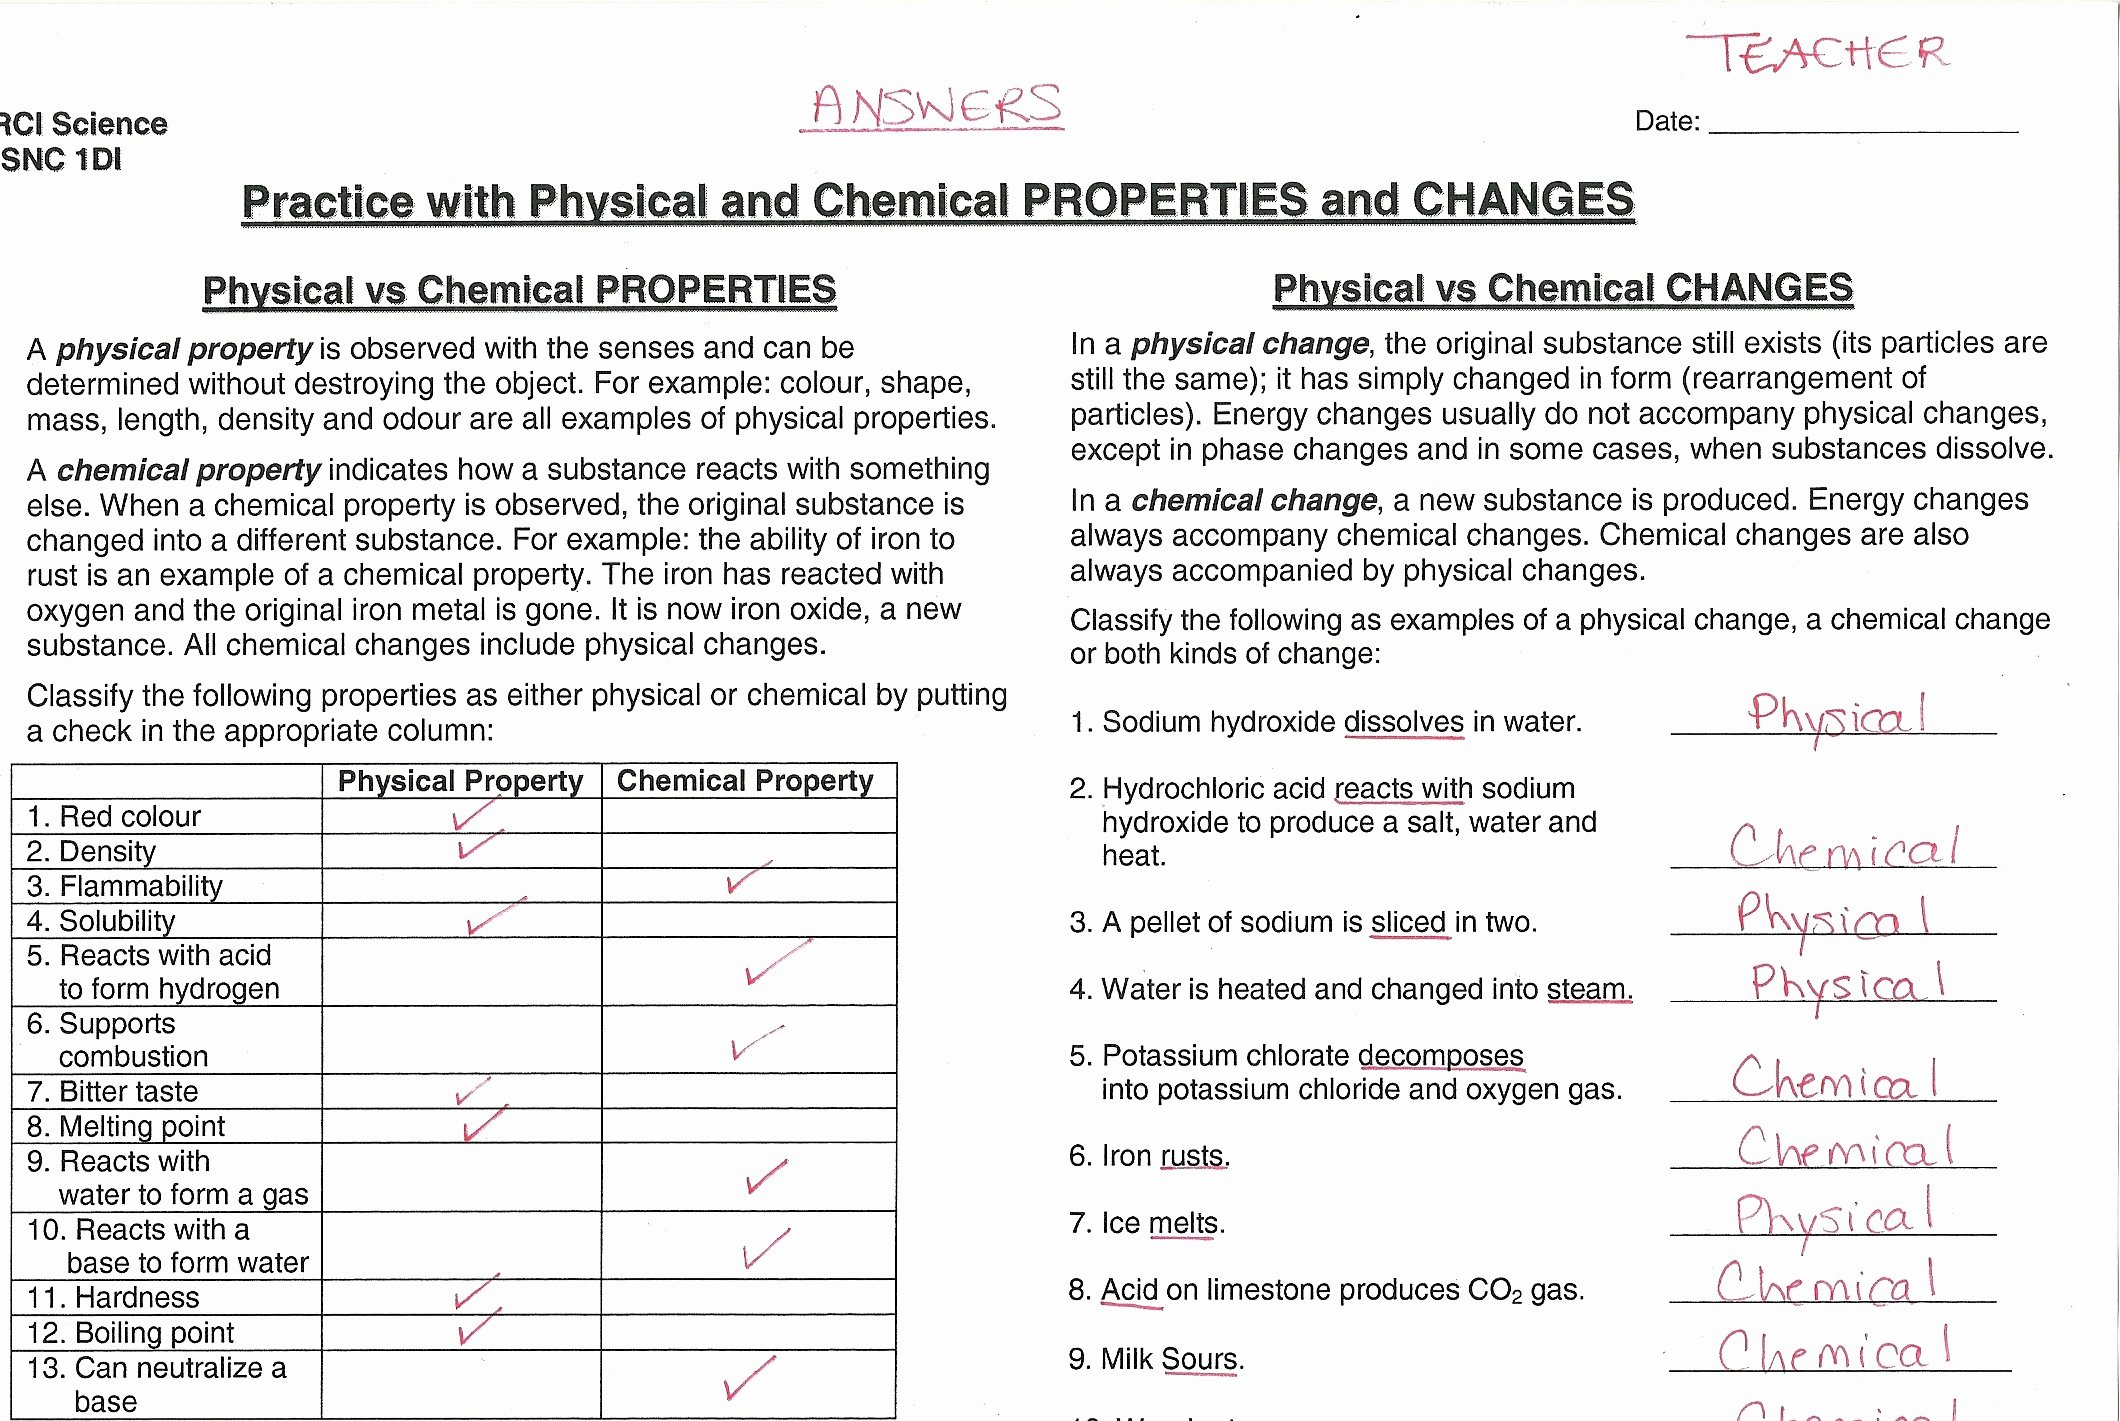 Physical and Chemical Properties Worksheet Lovely Unit 3 Chemistry Miss Bodnar S Snc 1di Science Website